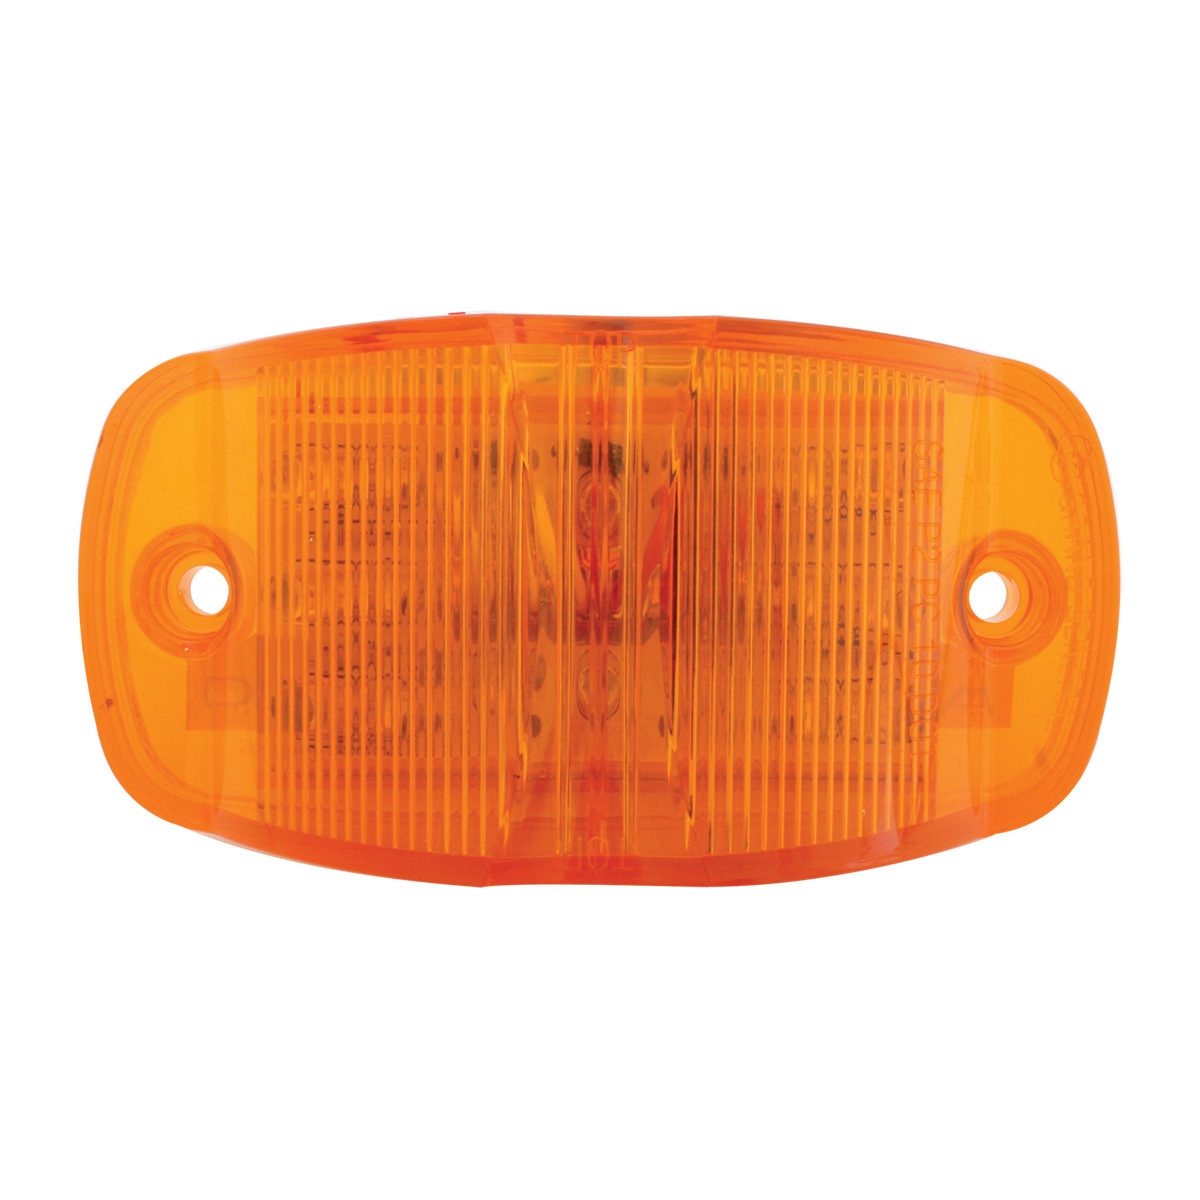 75160 Rectangular Camel Back Wide Angle Dual Function LED Light